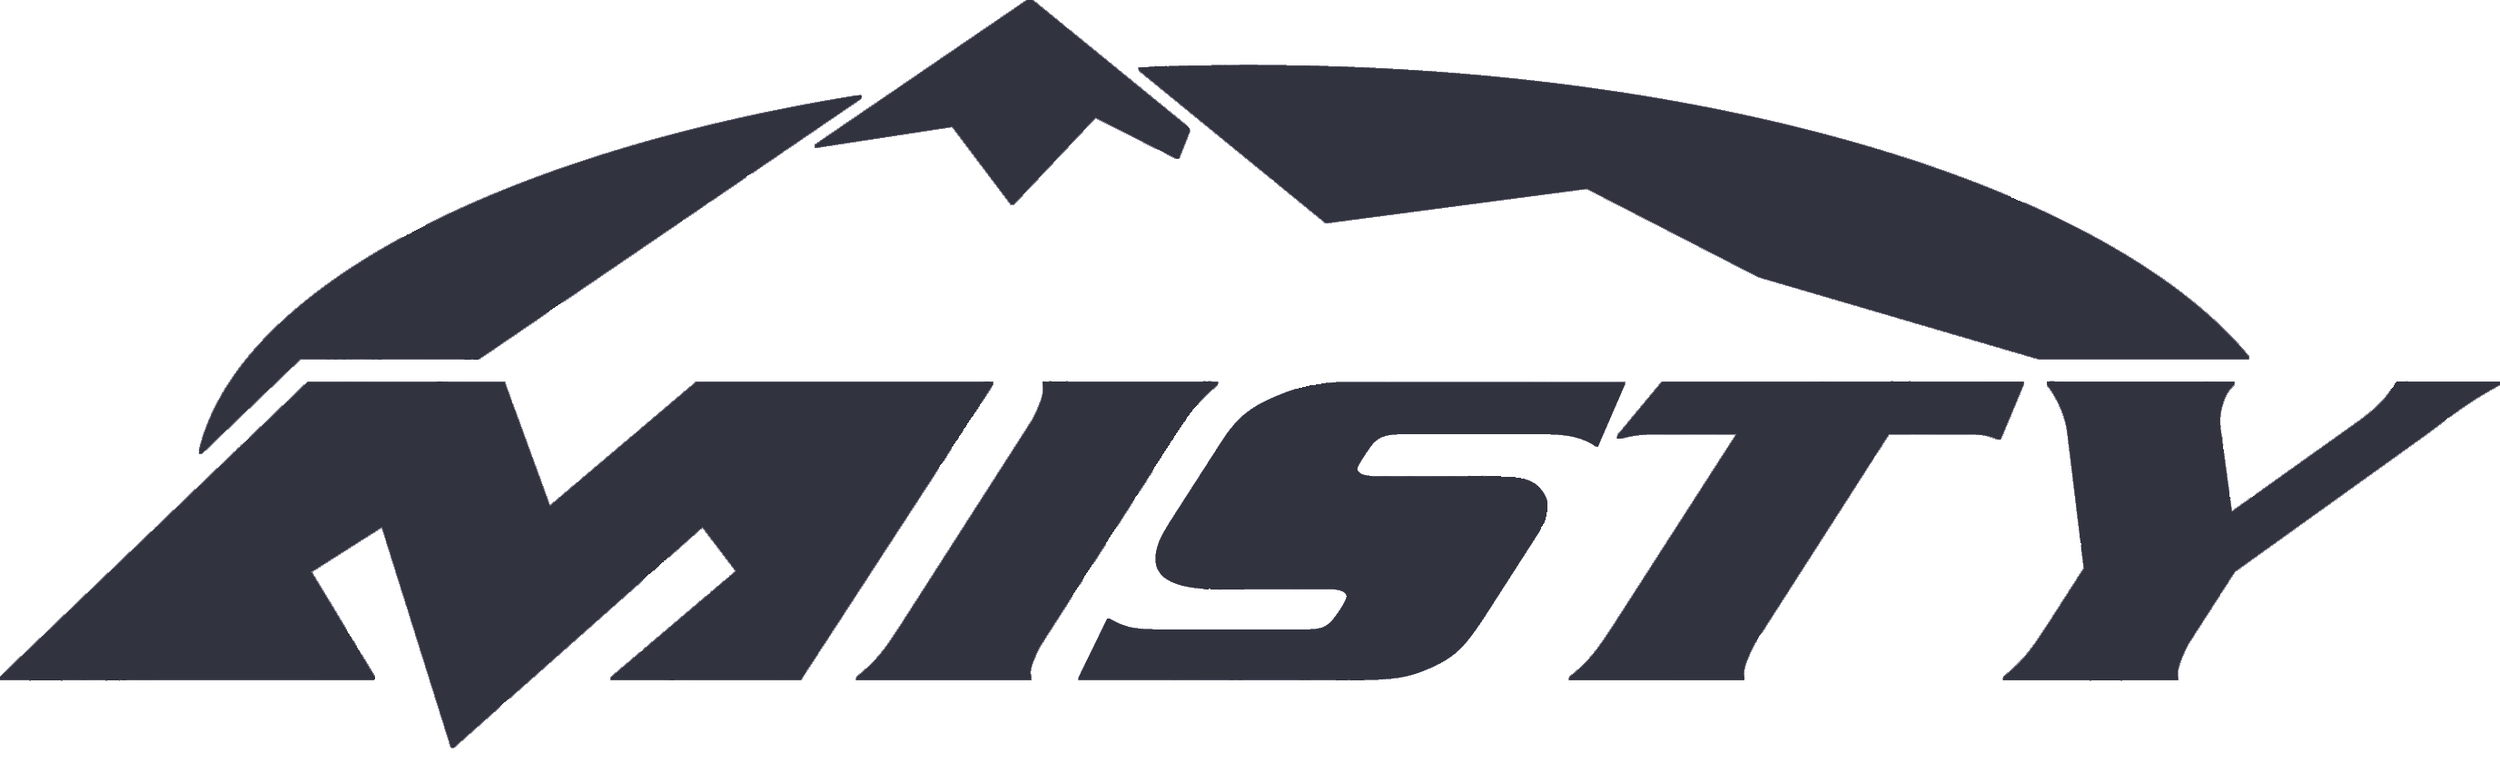 Misty Mountain Threadworks   Misty Mountain designs and manufactures climbing harnesses and load rated textiles in the mountains of North Carolina. Since 1985 we…   Read More